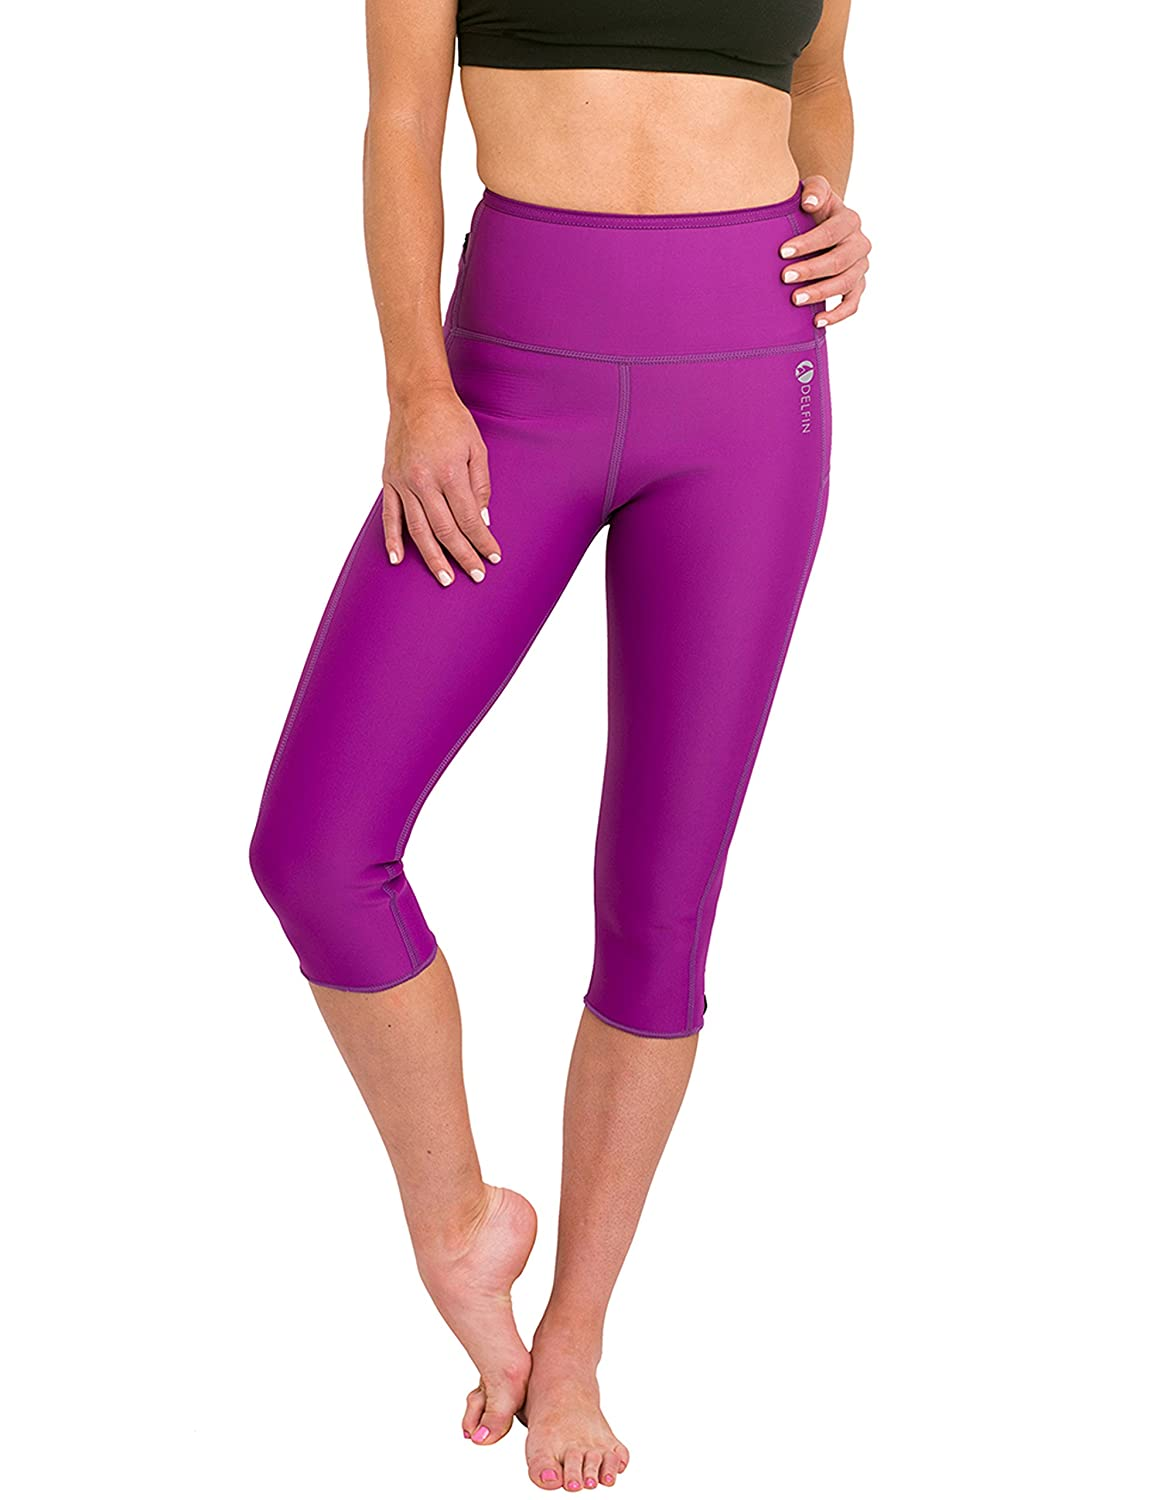 Delfin Spa Womens Heat Maximizing Neoprene Capri